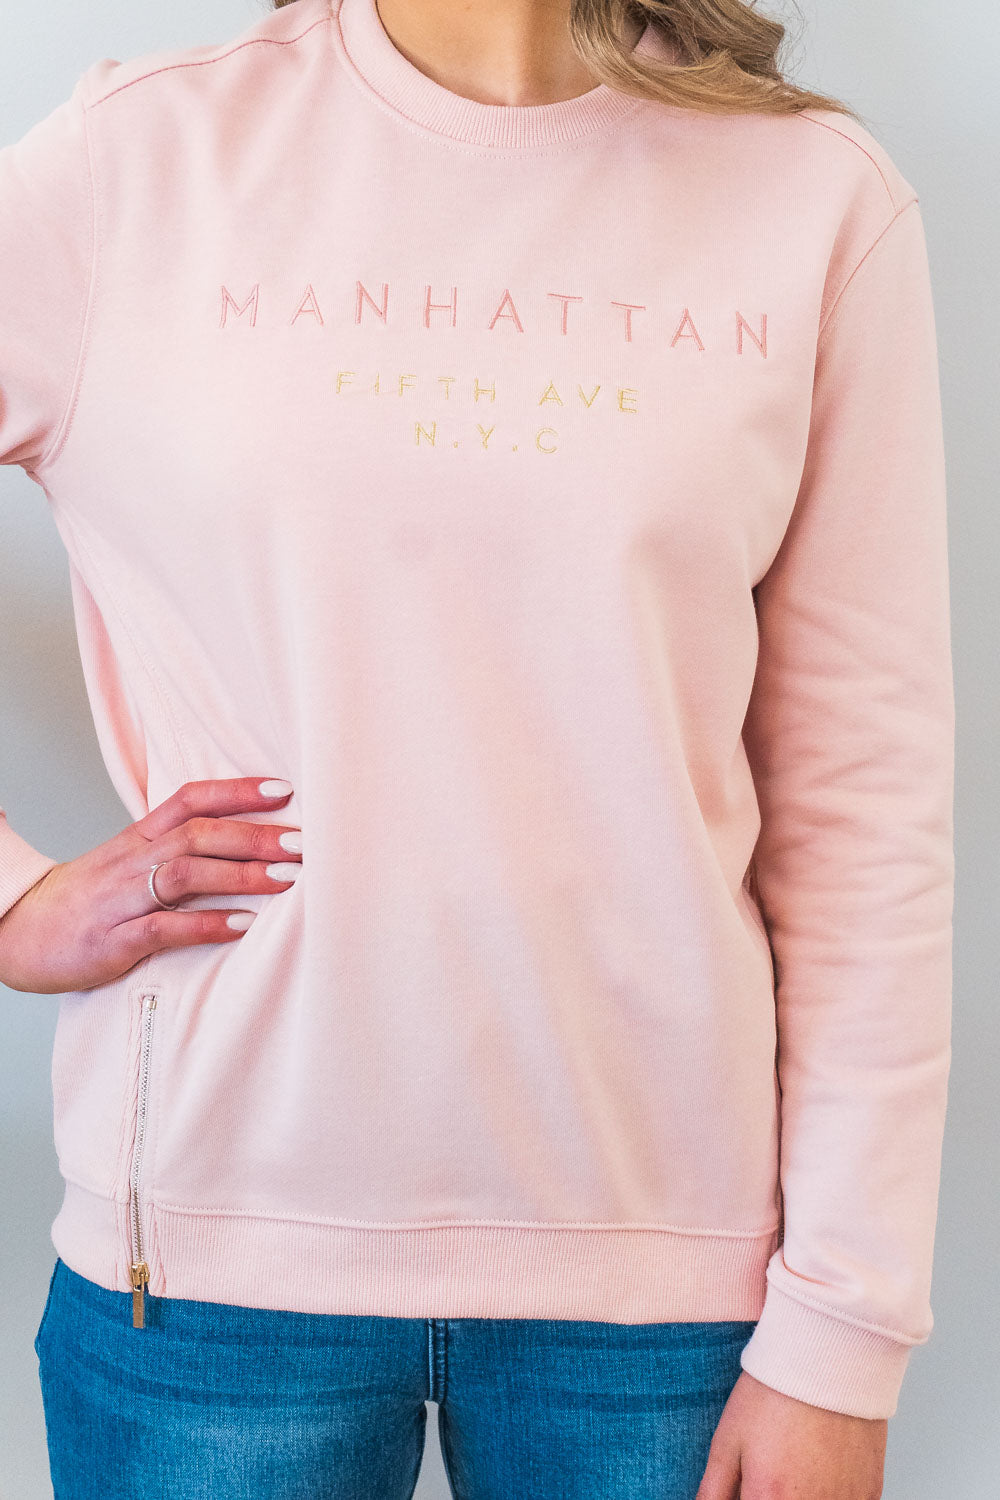 Manhattan Jumper in Blush